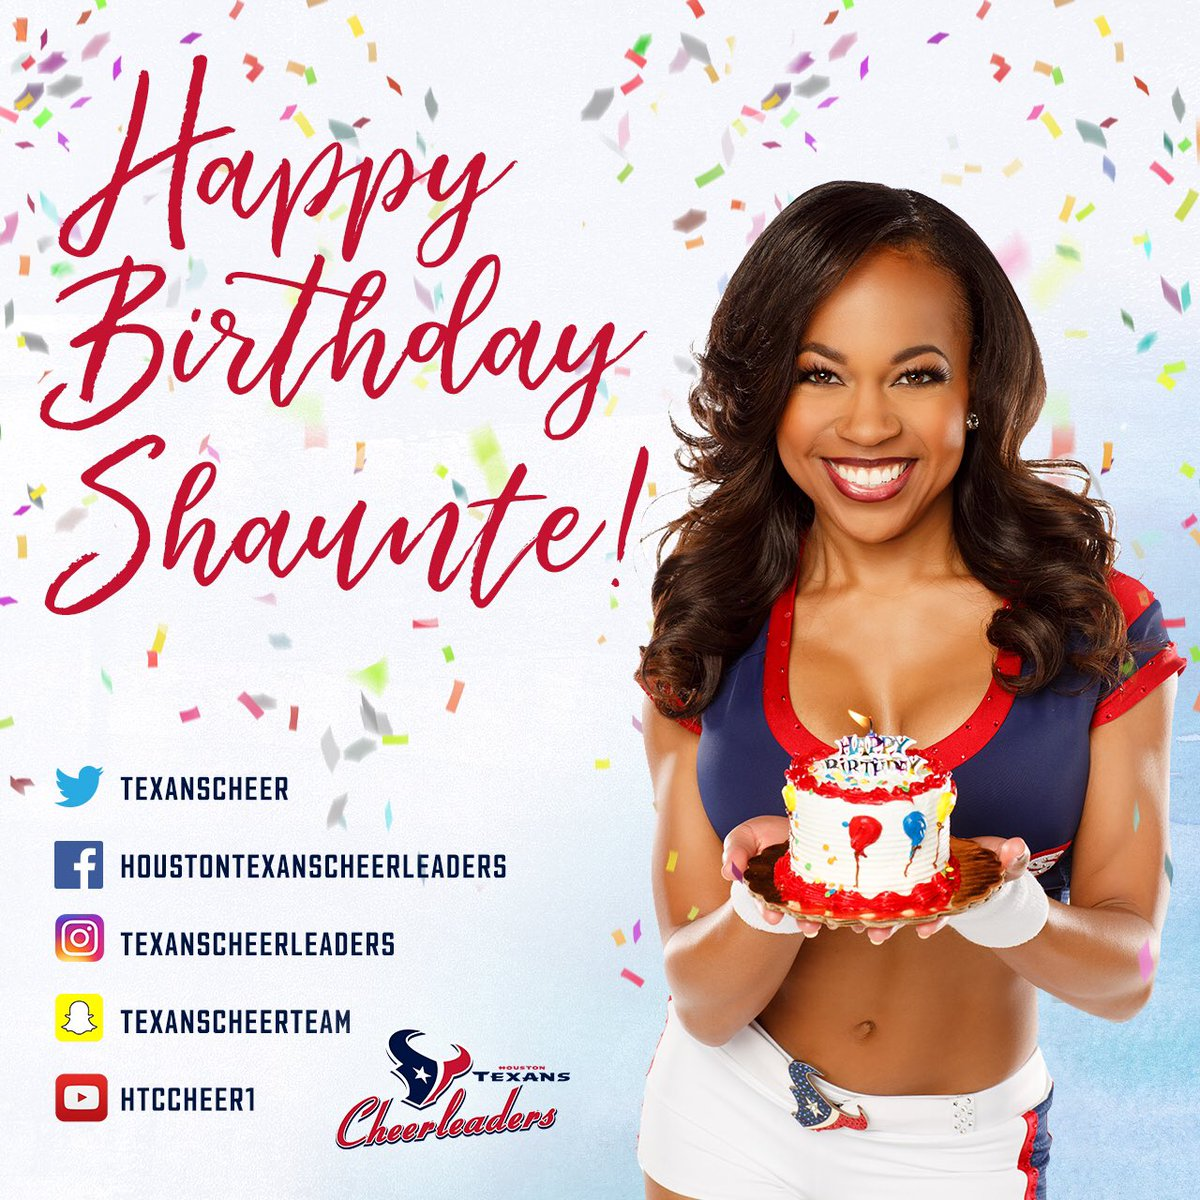 Wishing the lovely Shaunte a wonderful birthday! 💕🎂💕🎂💕